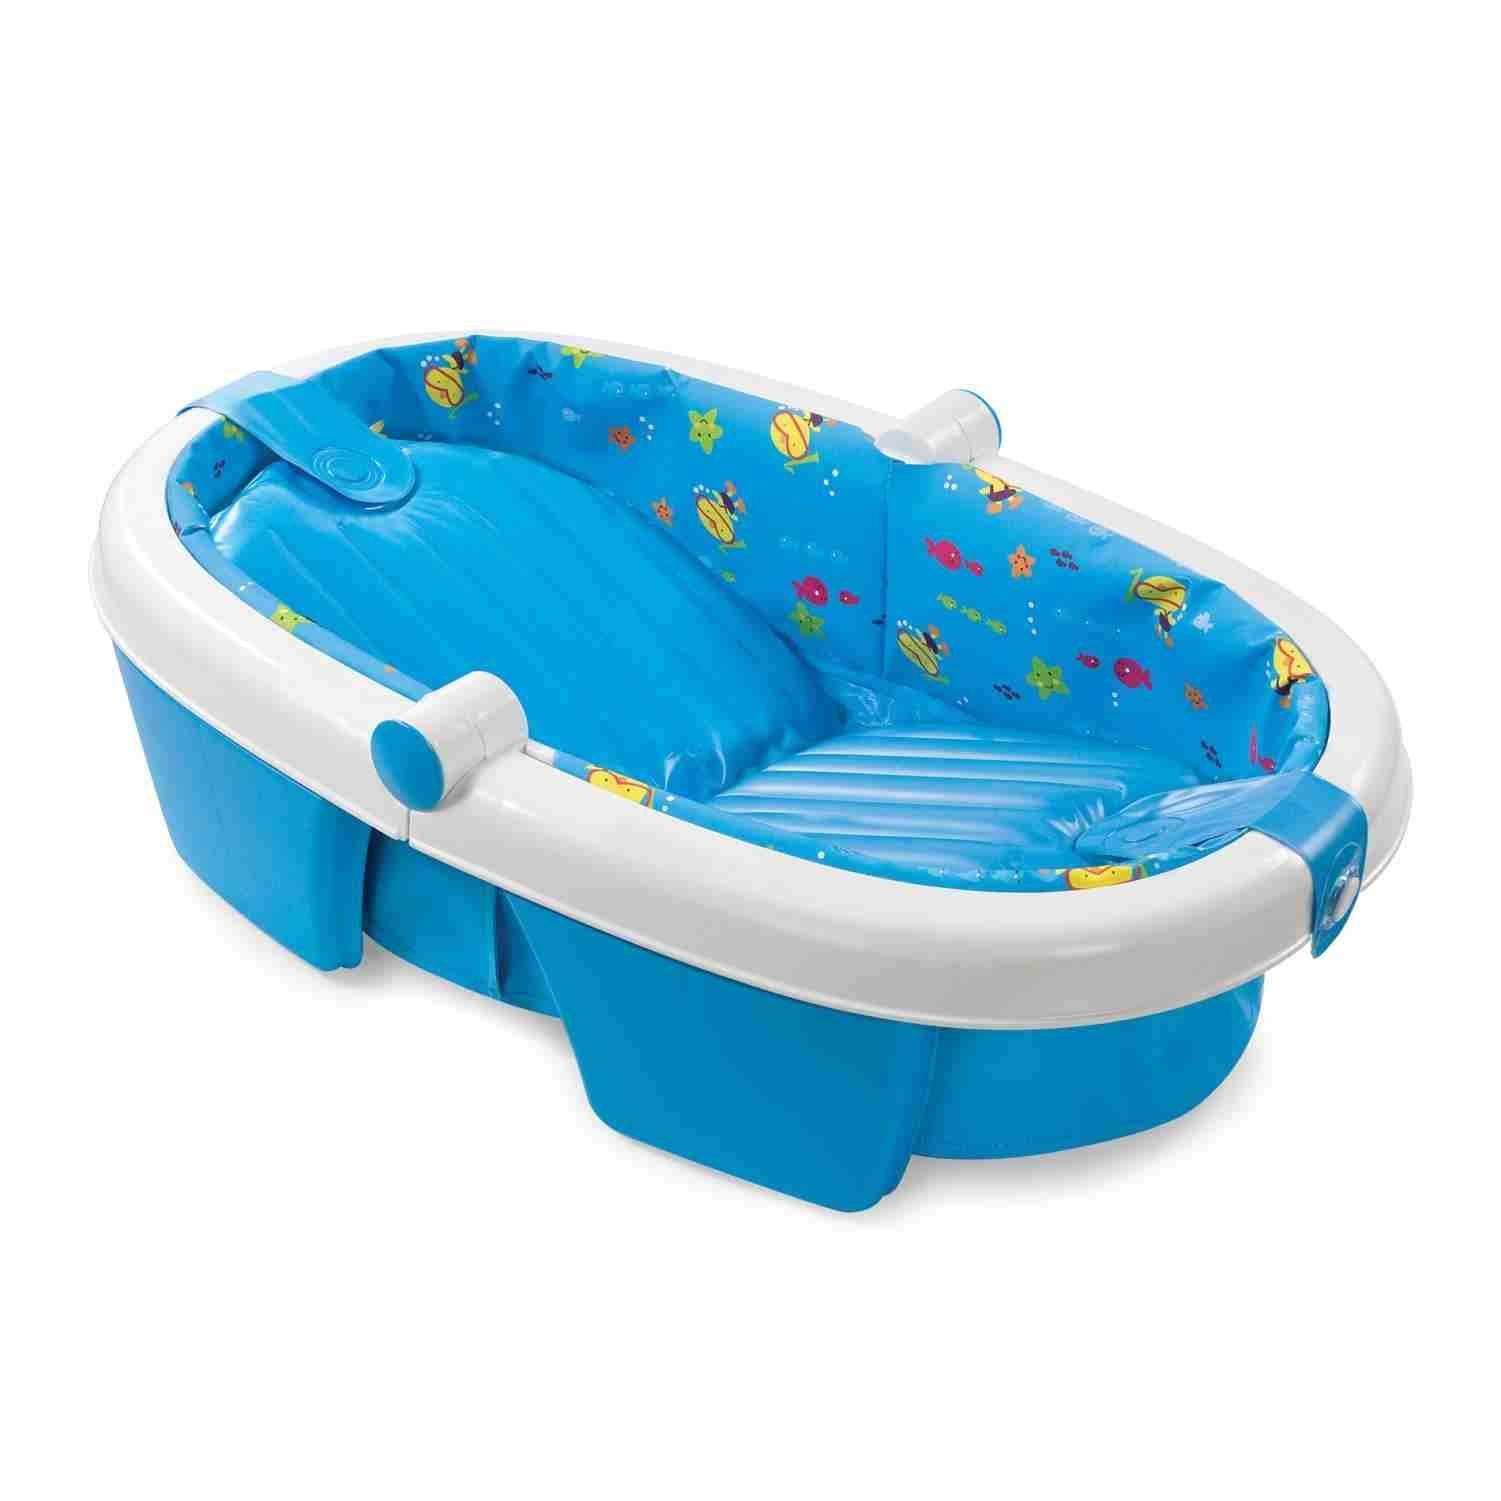 New post Trending-inflatable bathtub for toddlers-Visit-entermp3 ...